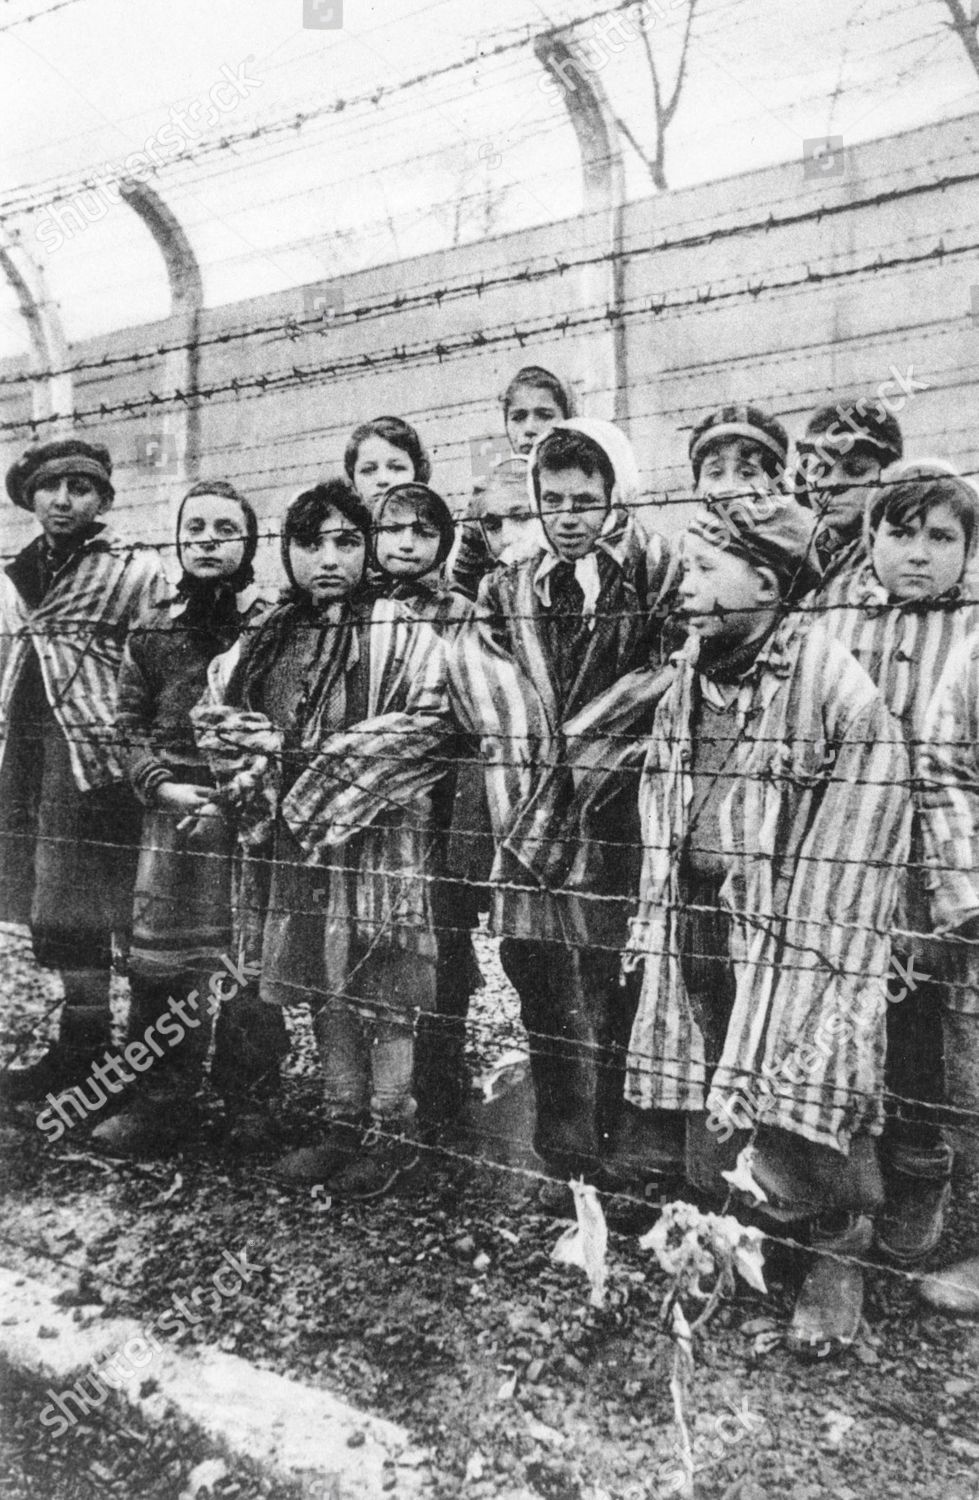 CHILD PRISONERS DIFFERENT COUNTRIES AUSCHWITZ CONCENTRATION